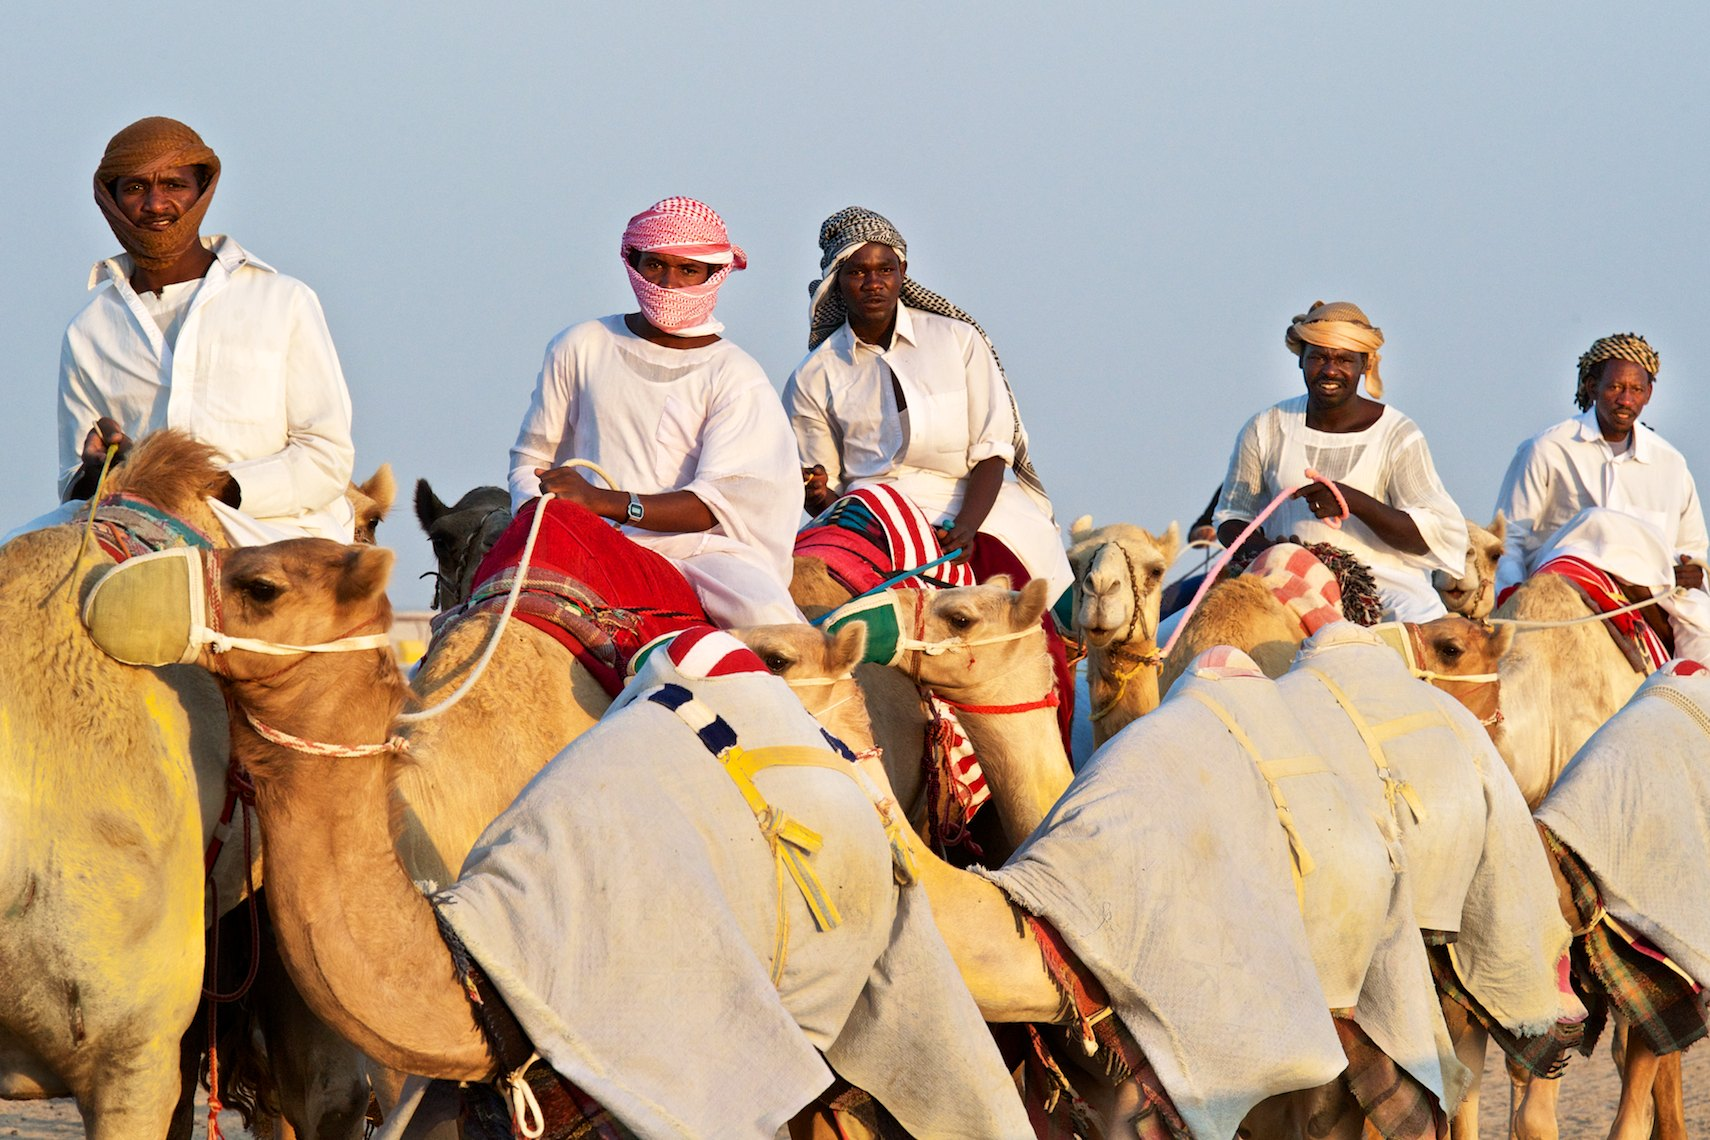 Qatar Al Shahaniya camel race training 2